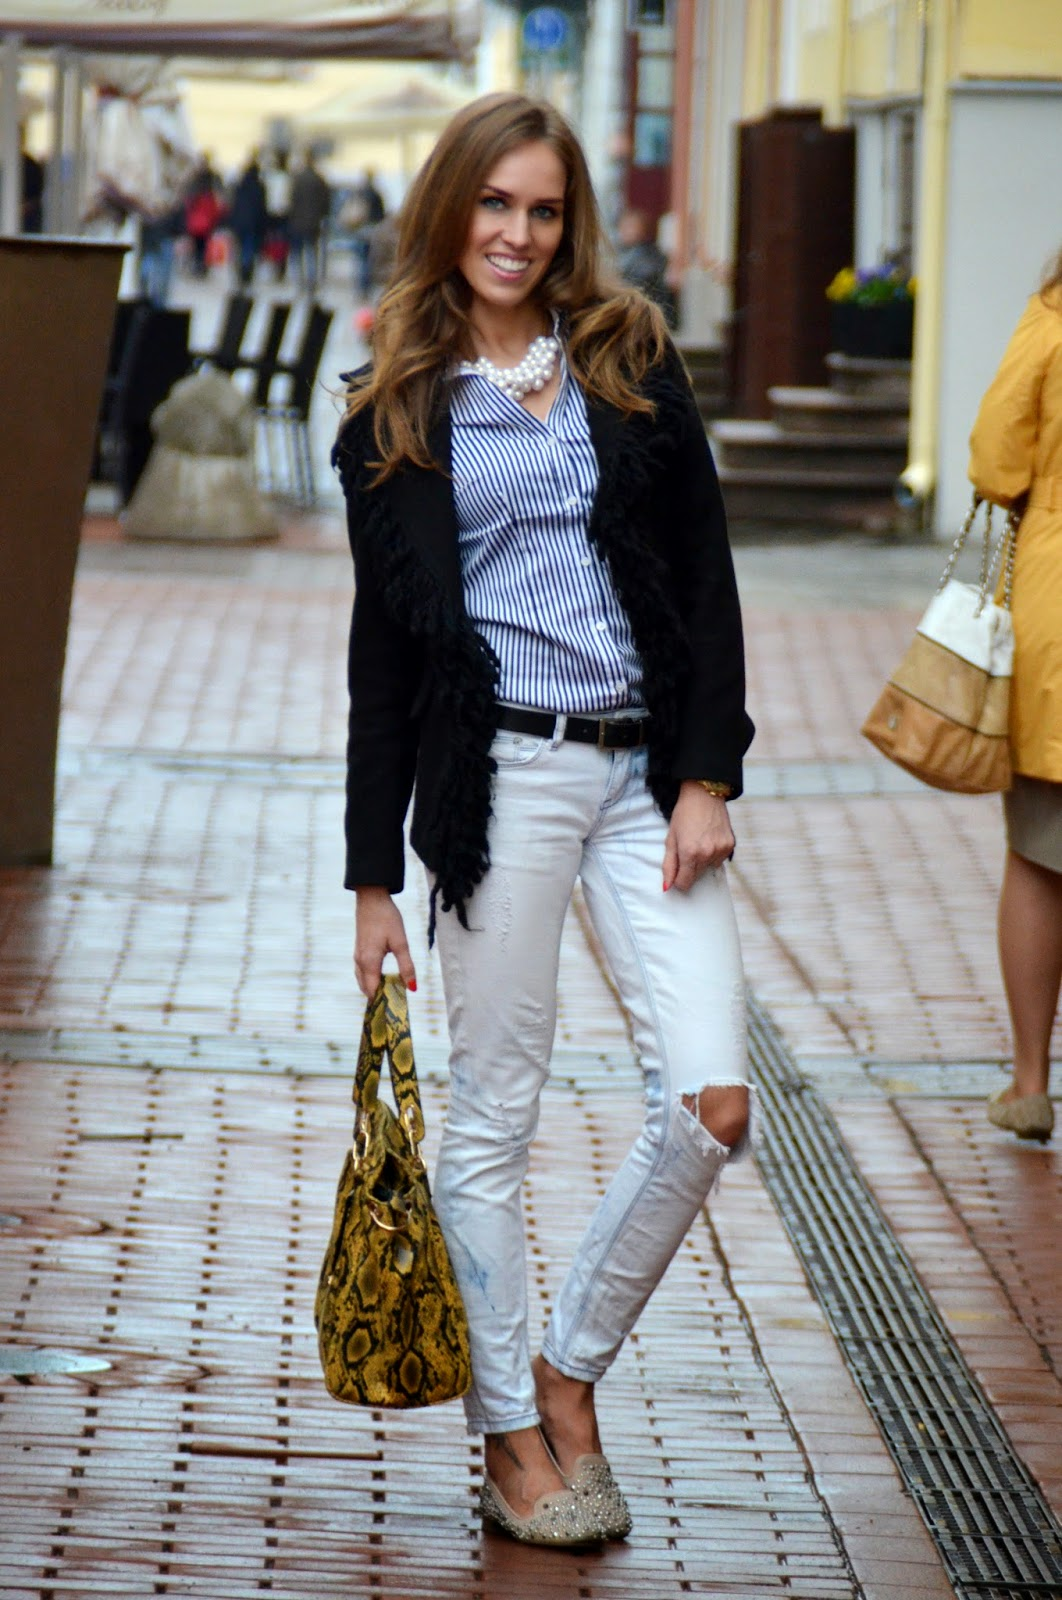 winter-outfit-hm-striped-shirt-gina-tricot-jeans